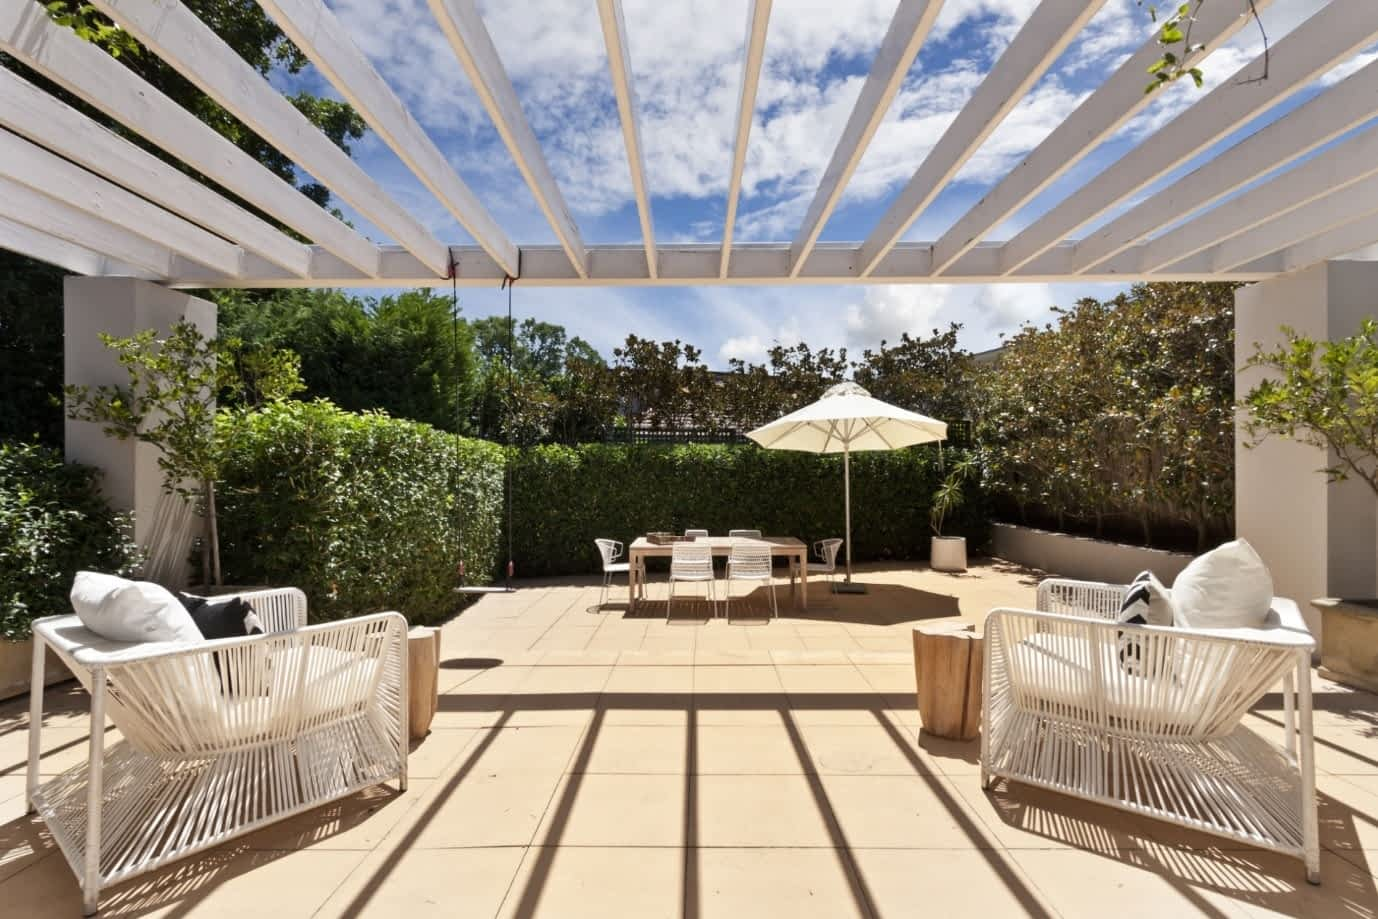 Summer Trends for Your Outdoor Space